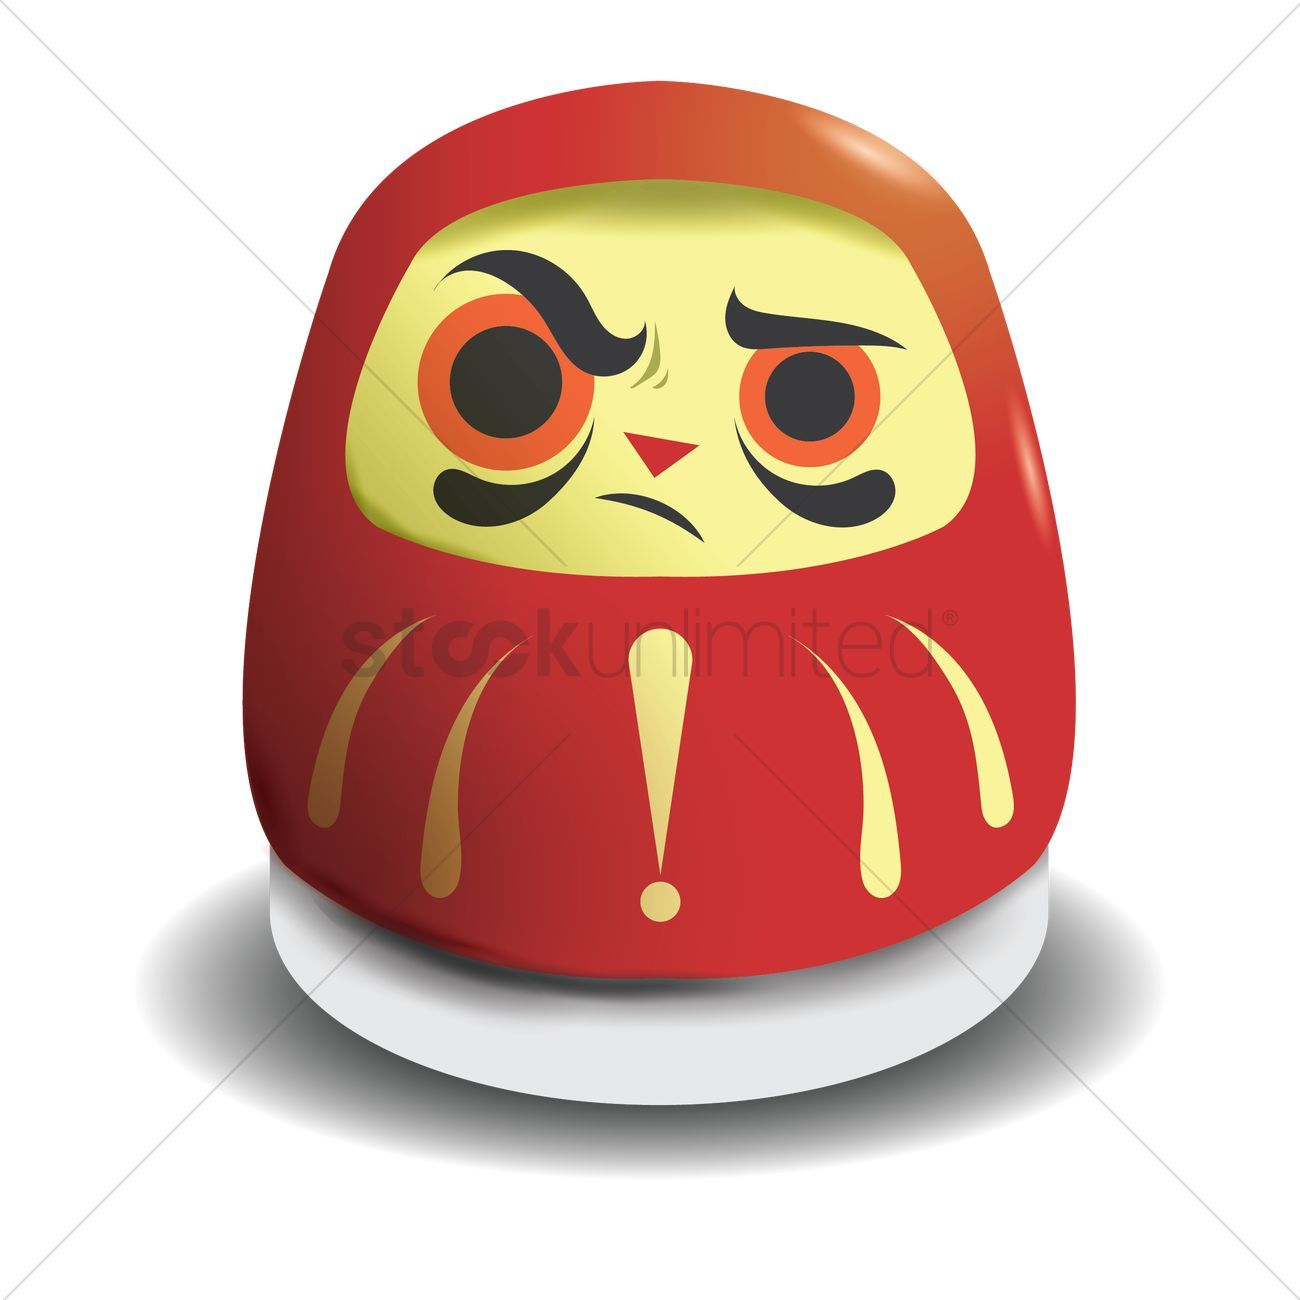 Attitude daruma doll vectors stock clipart